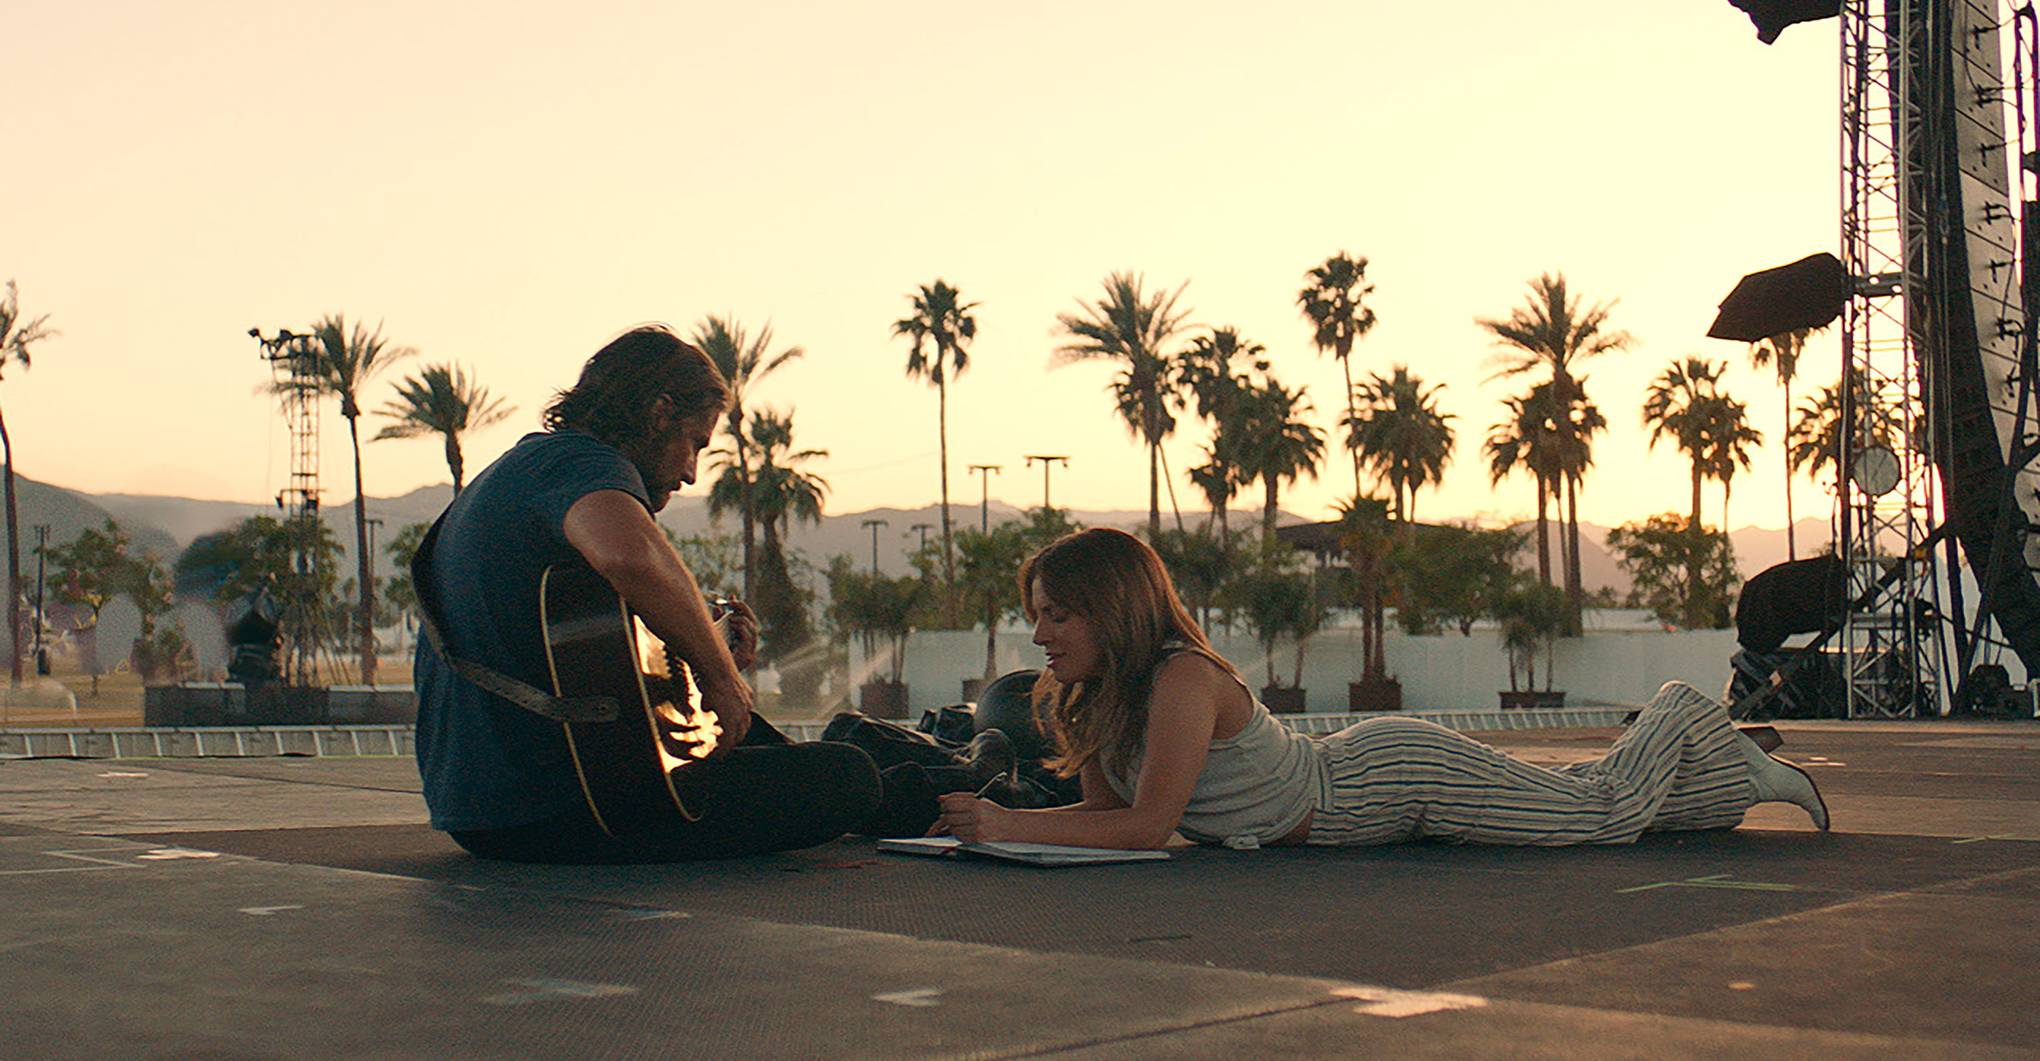 Where is 'A Star is Born' filmed?